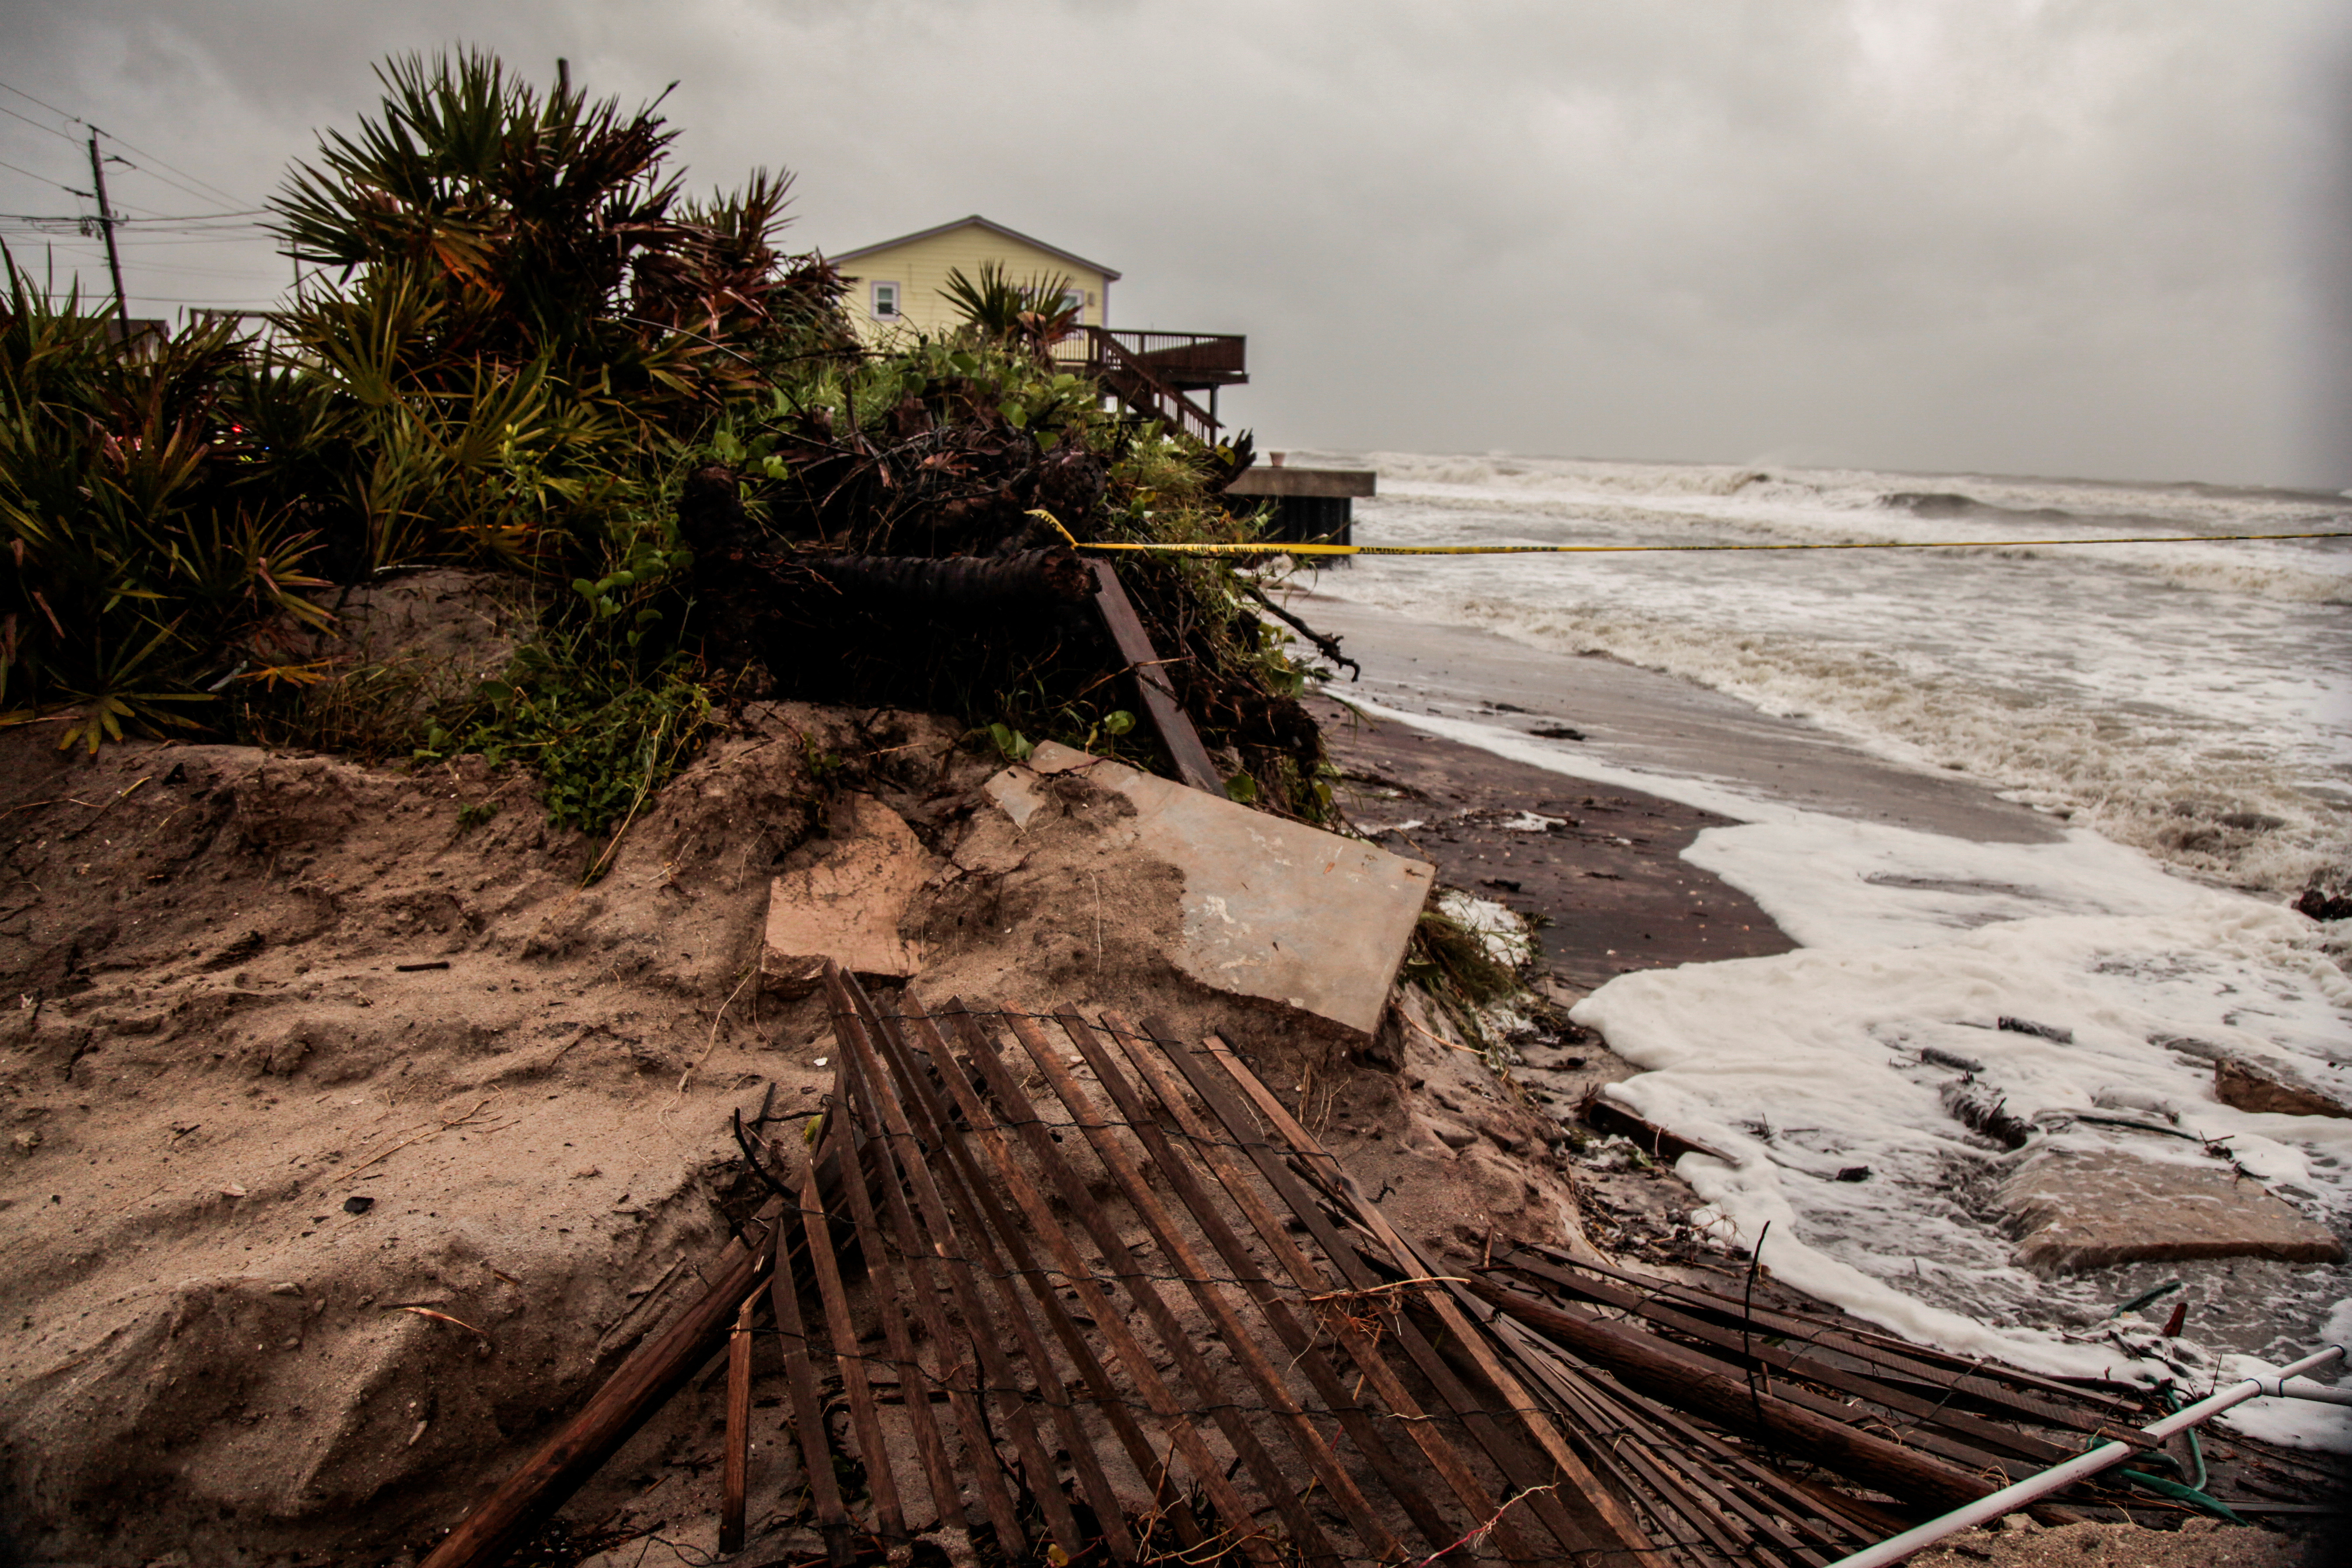 Beach erosion and debris are seen due to Hurricane Dorian as the A1A coastal route of Vilano Beach is closed, in St. Augustine, Florida, U.S.